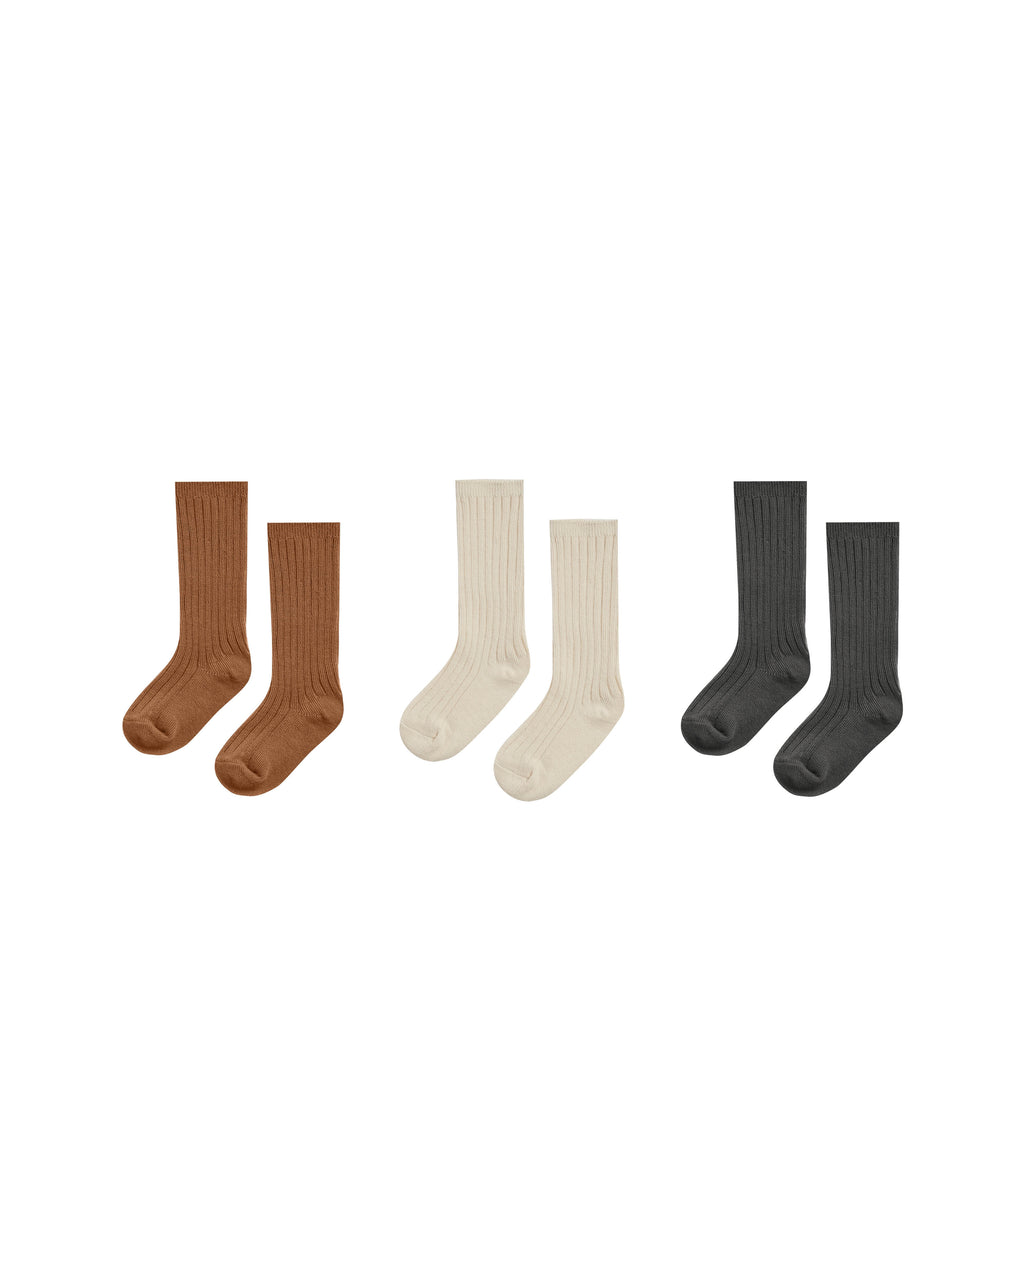 Rylee + Cru Knee Sock Set - Cinnamon, Natural, Black